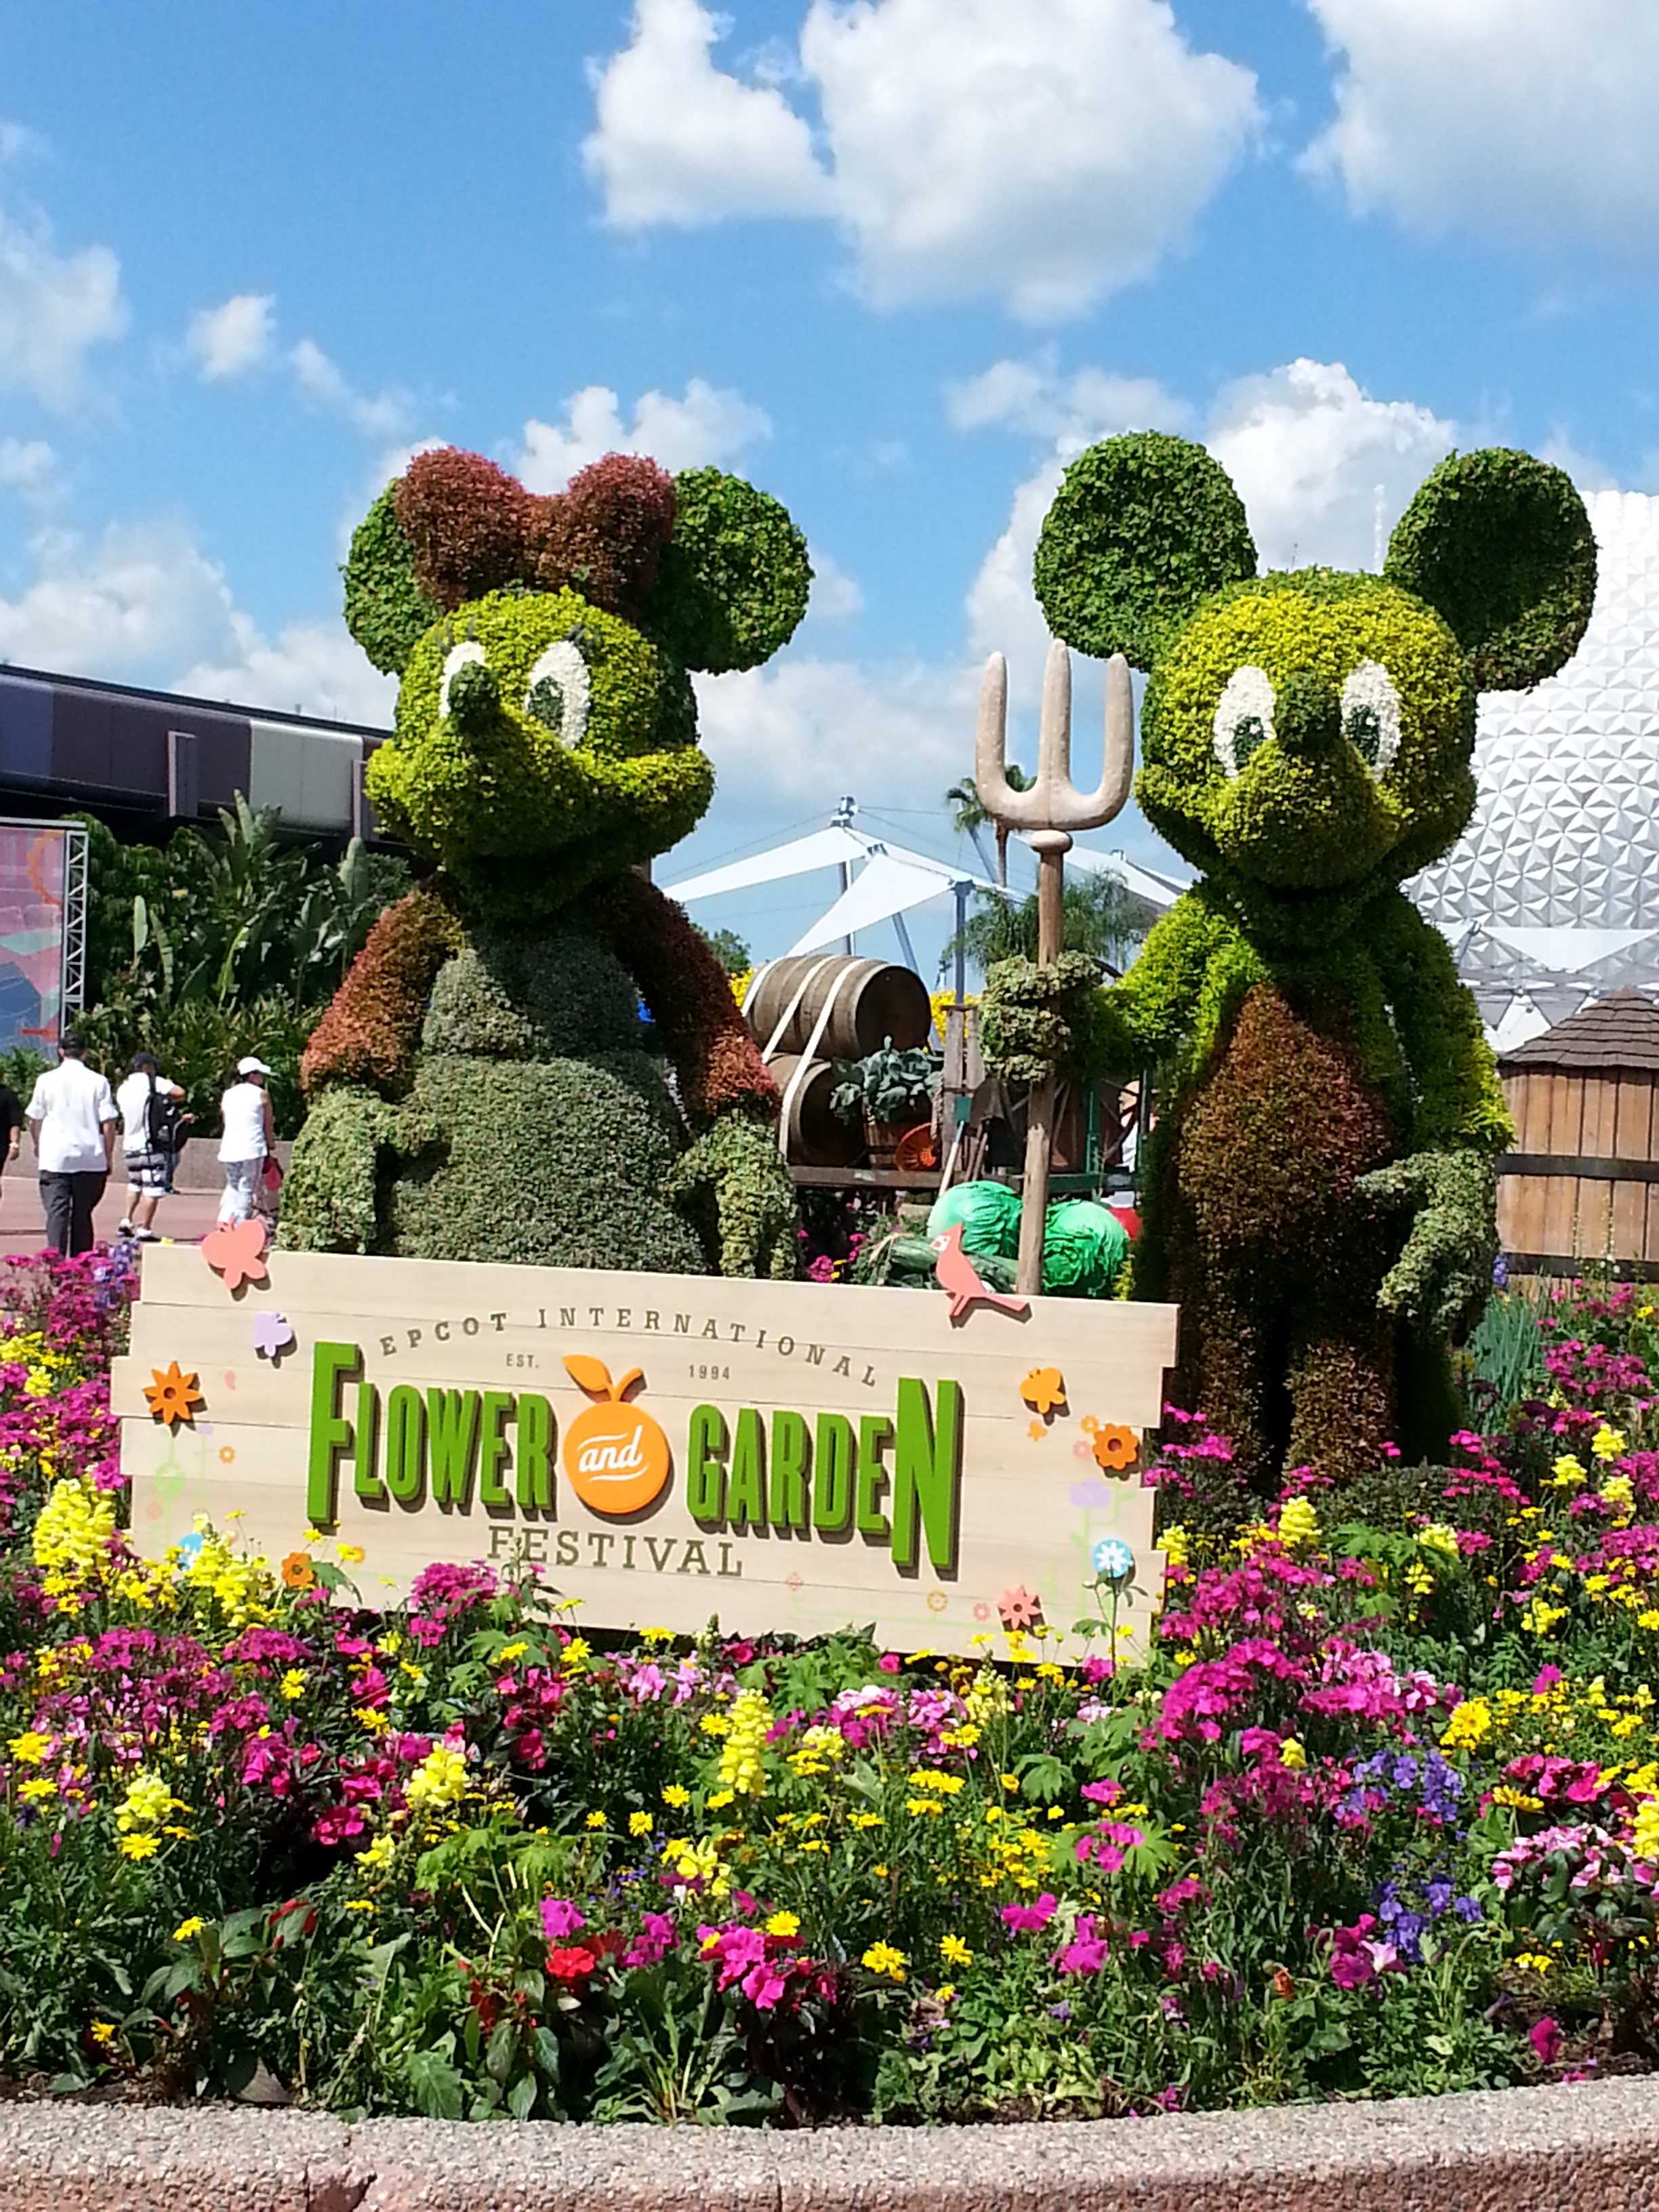 Terrific Tuesdays: Spring is in The Air at Epcot!